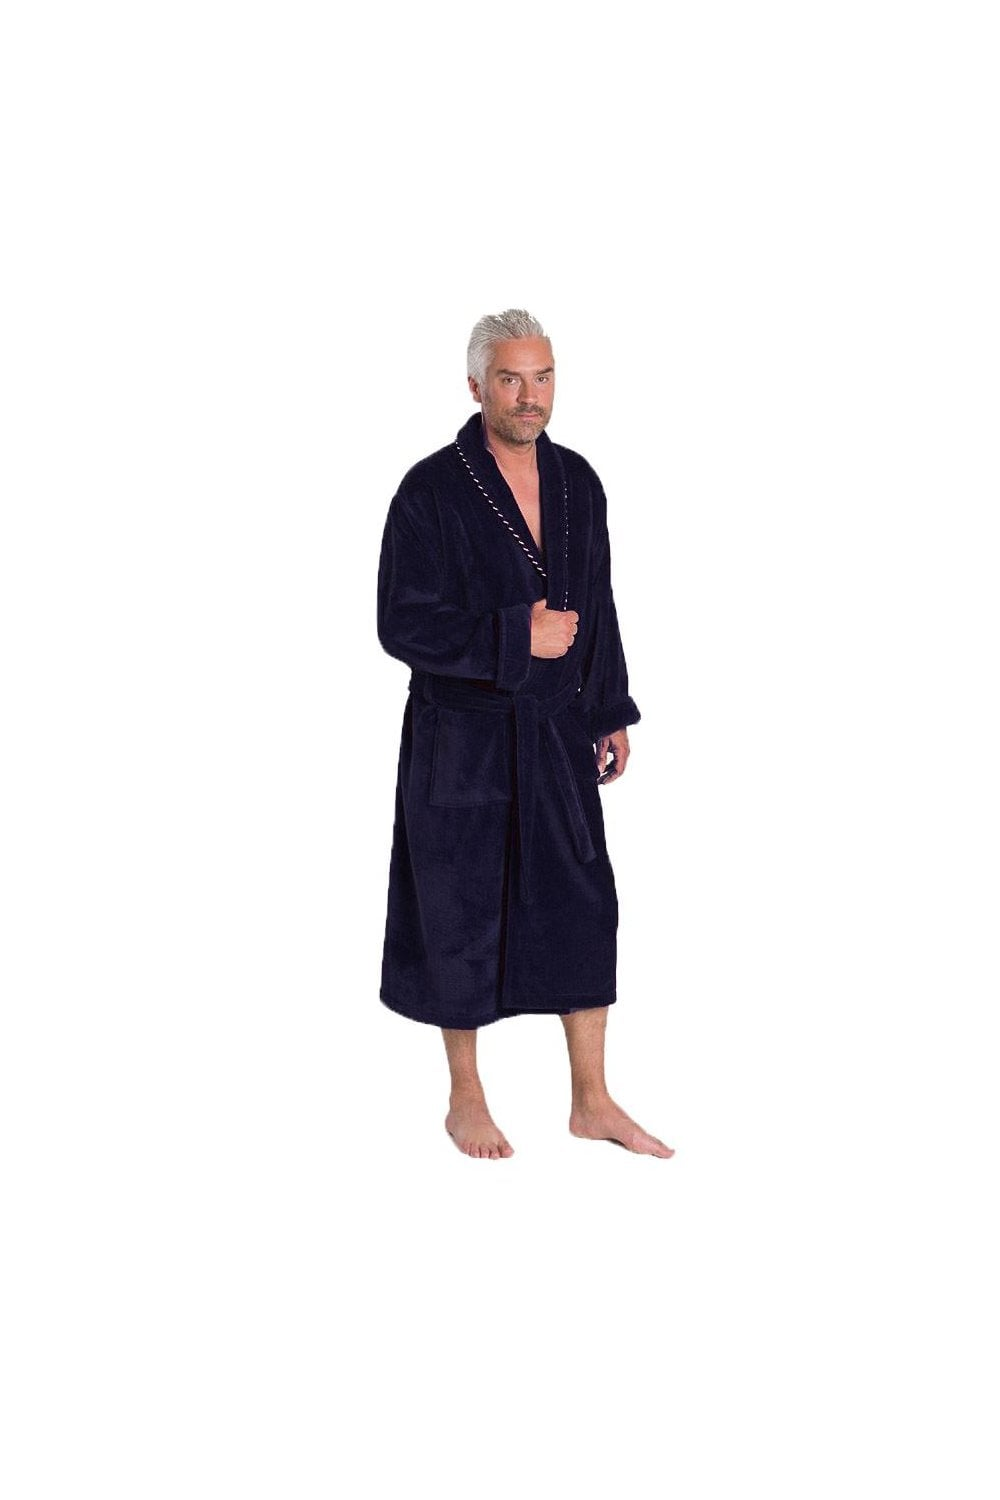 Bown of London Earl Navy Dressing Gown - 100% Cotton - Bath Robe ...